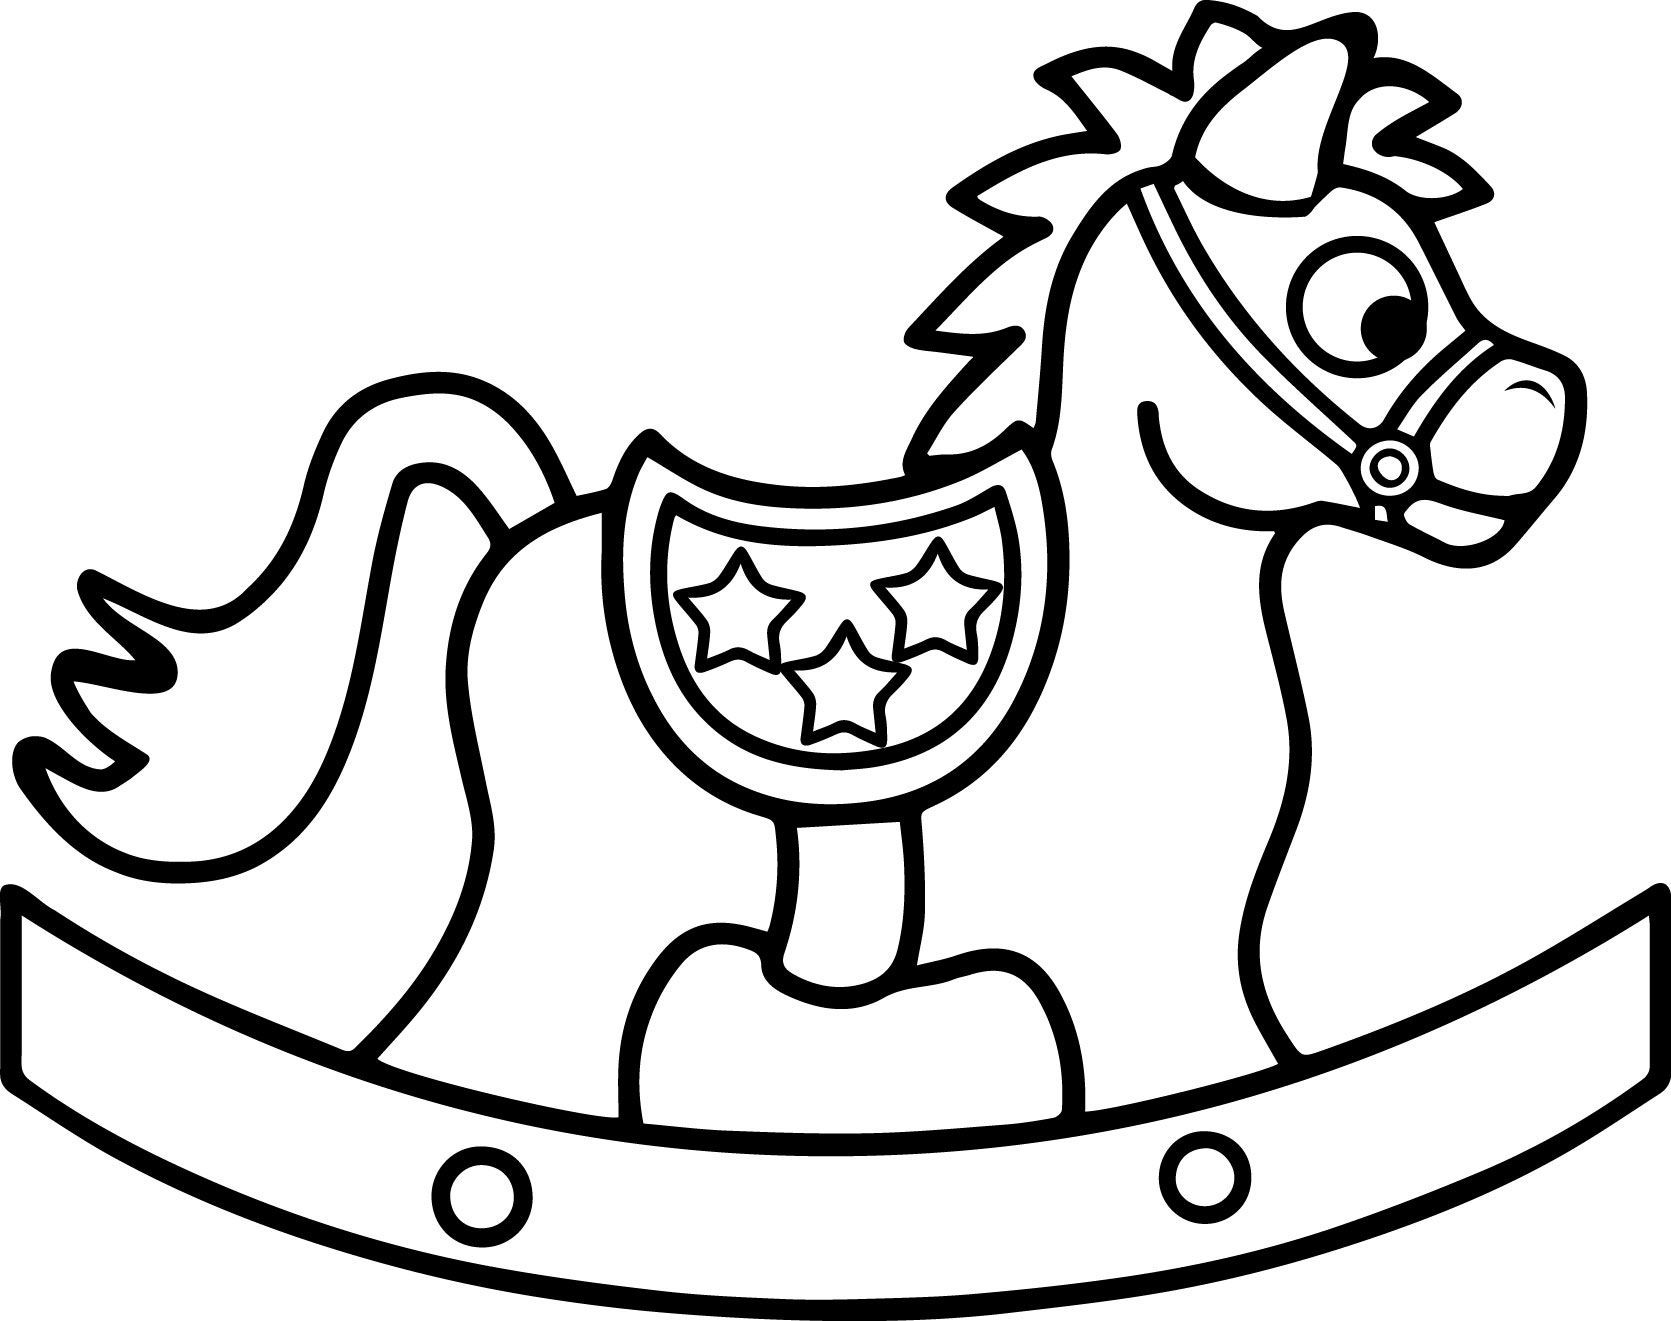 Rocking Horse Coloring Pages At Getcolorings